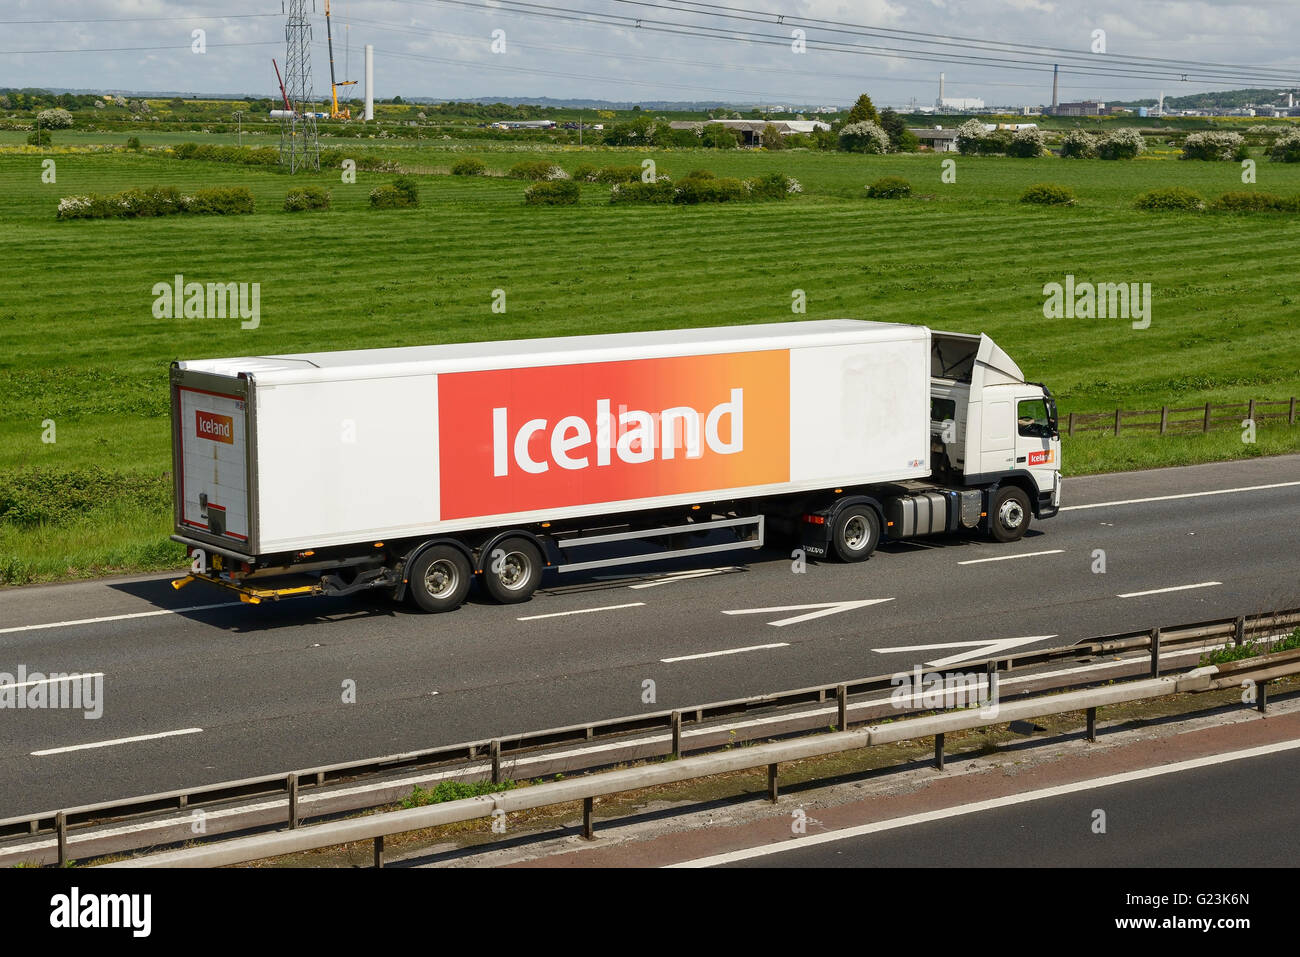 Iceland HGV travelling on the M56 motorway in Cheshire UK - Stock Image